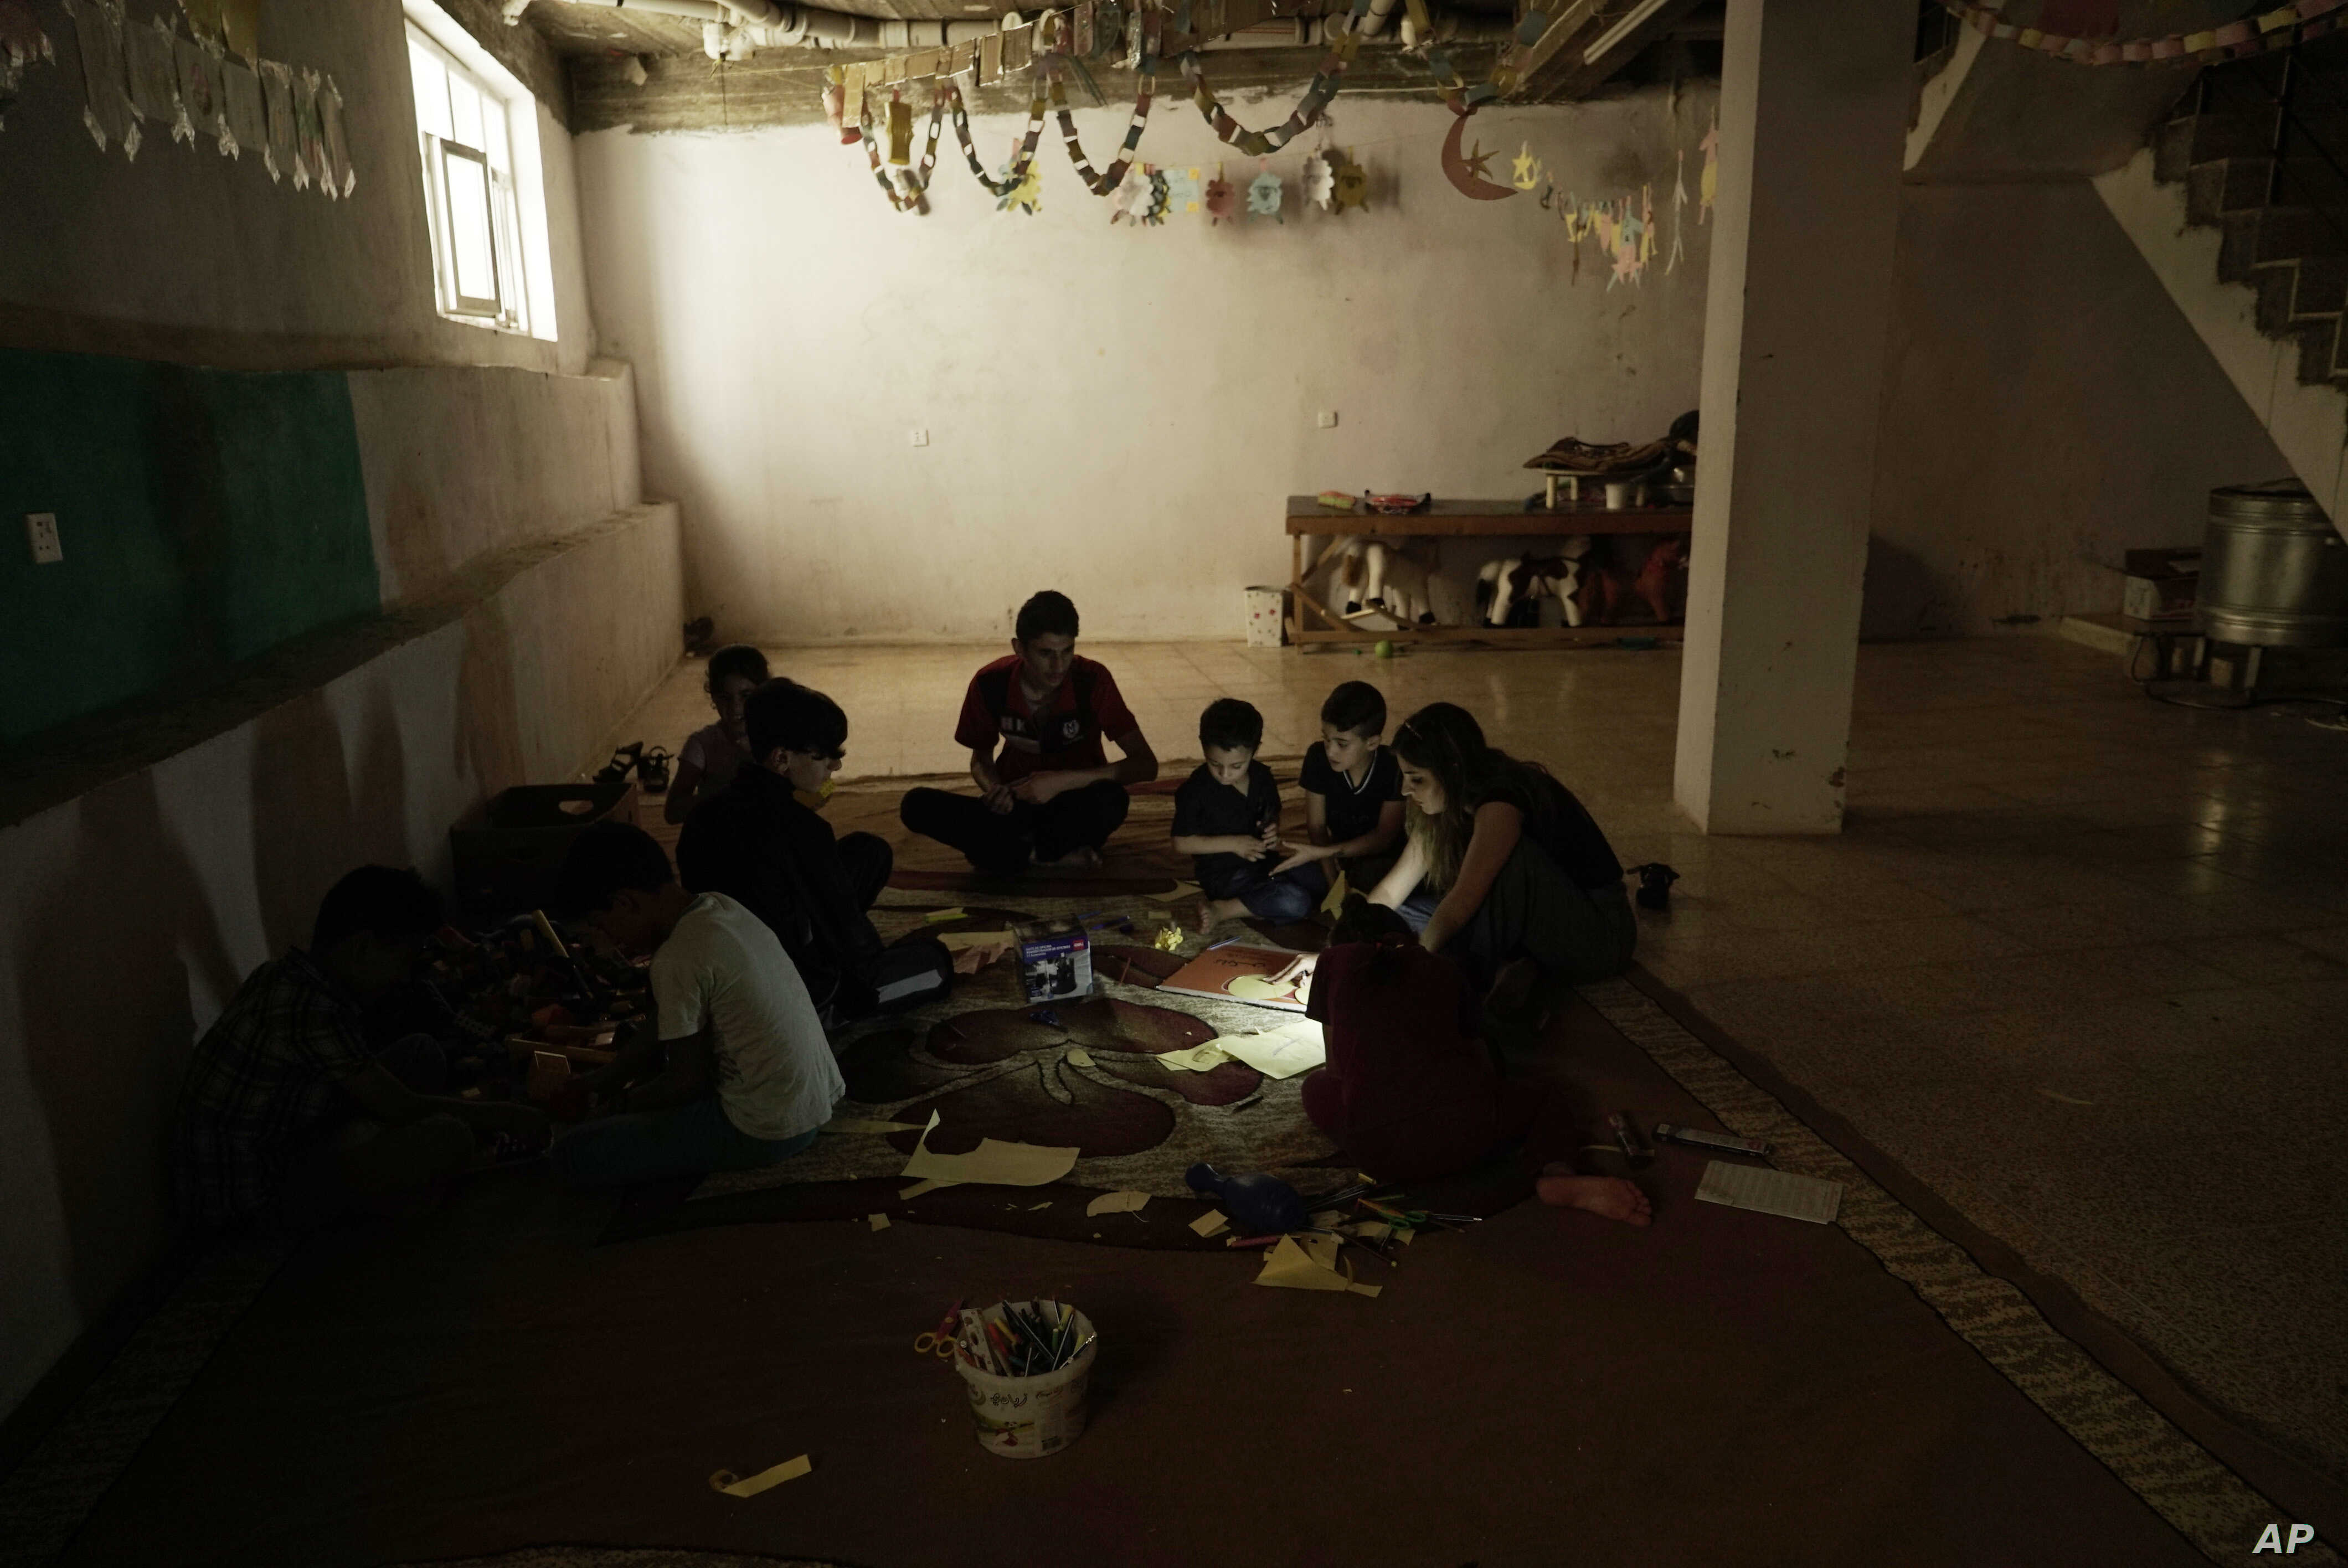 In this Aug. 22, 2018 photo, Yazidi children work on arts and crafts in the basement of an orphanage in Sheikhan, Iraq.